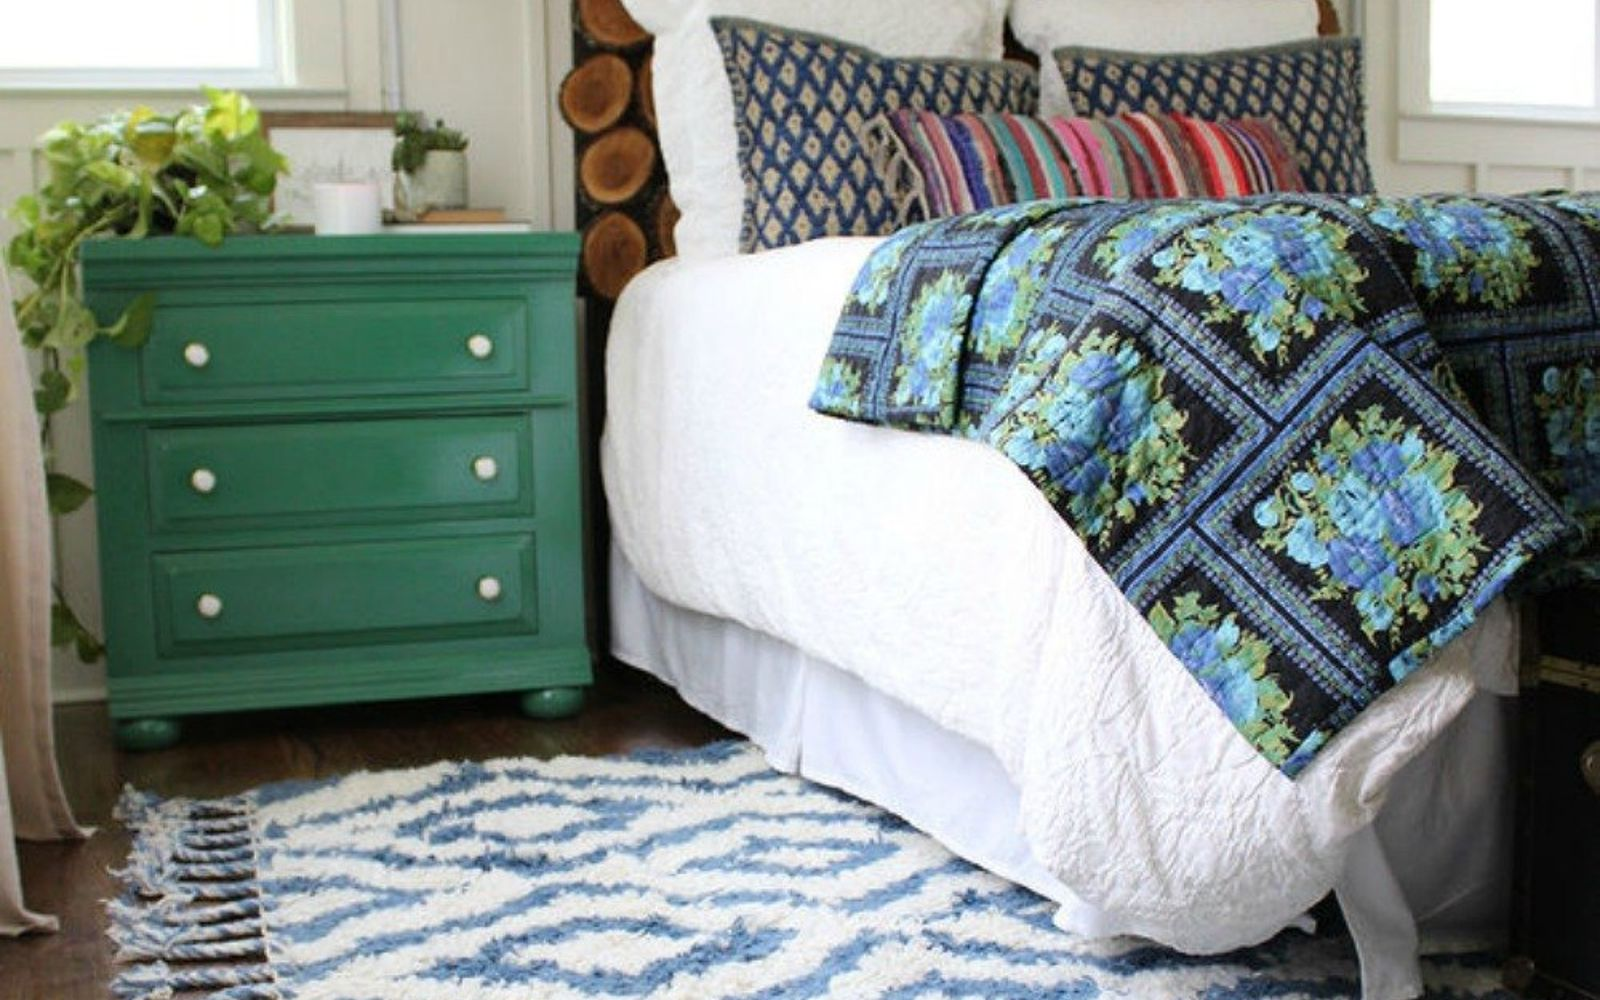 s these are the diy headboard ideas you ve been dreaming of, This wood slice of heaven